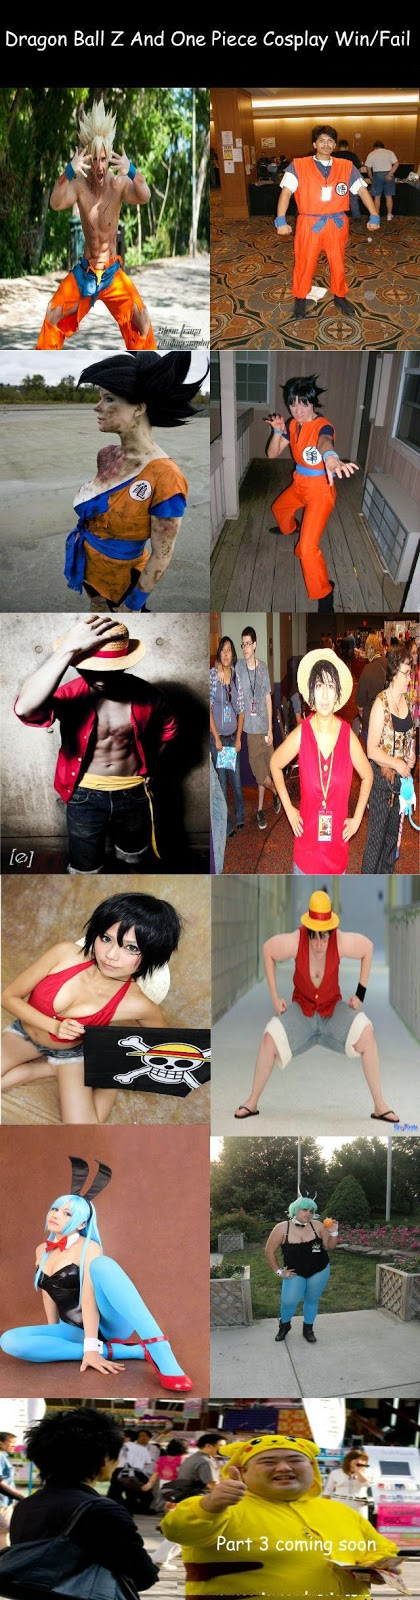 One Piece Dragonball Z Cosplay Win Fail Anime Meme